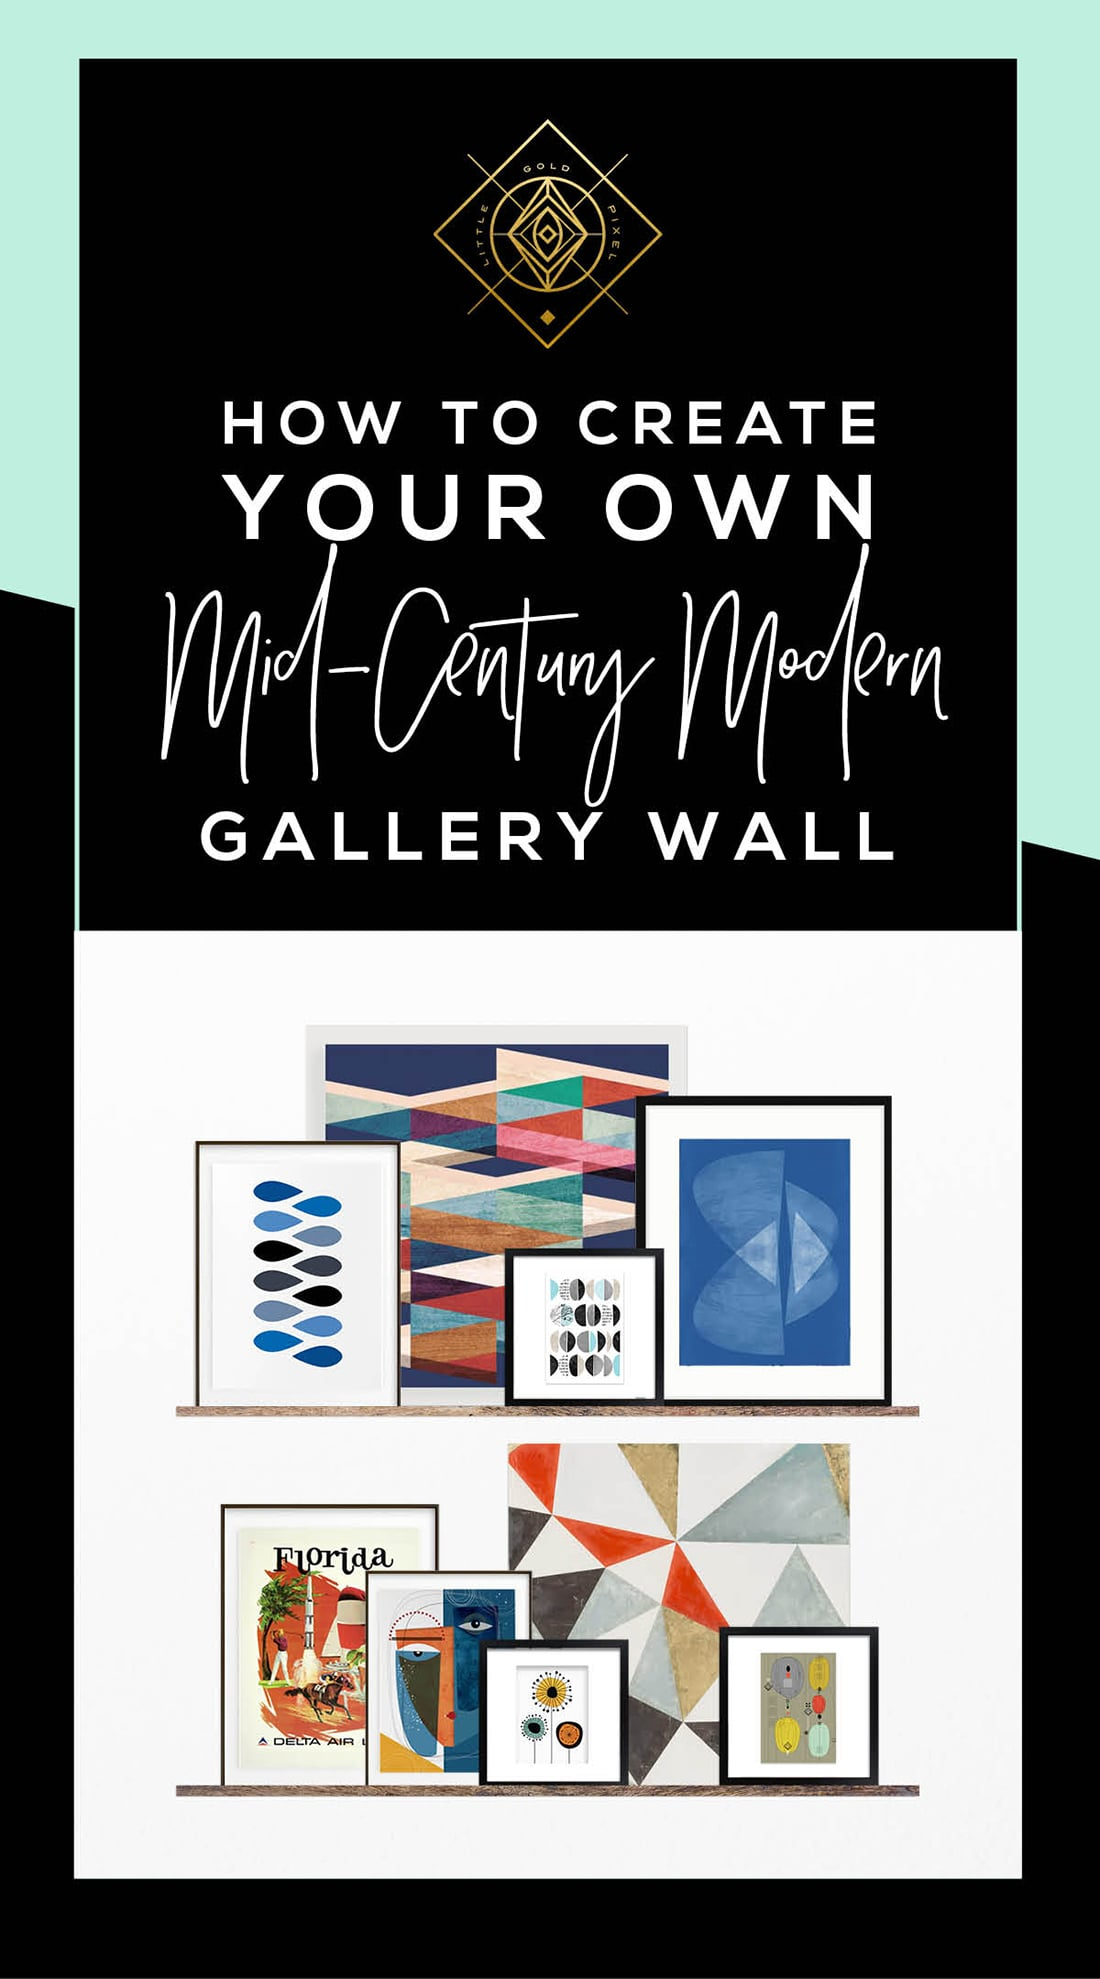 How to Create a Mid-Century Modern Gallery Wall • Little Gold Pixel •You have the Mid-Century Modern Glam decor, but what about the equally MCM gallery wall? Click through for a detailed style guide and gallery wall examples!